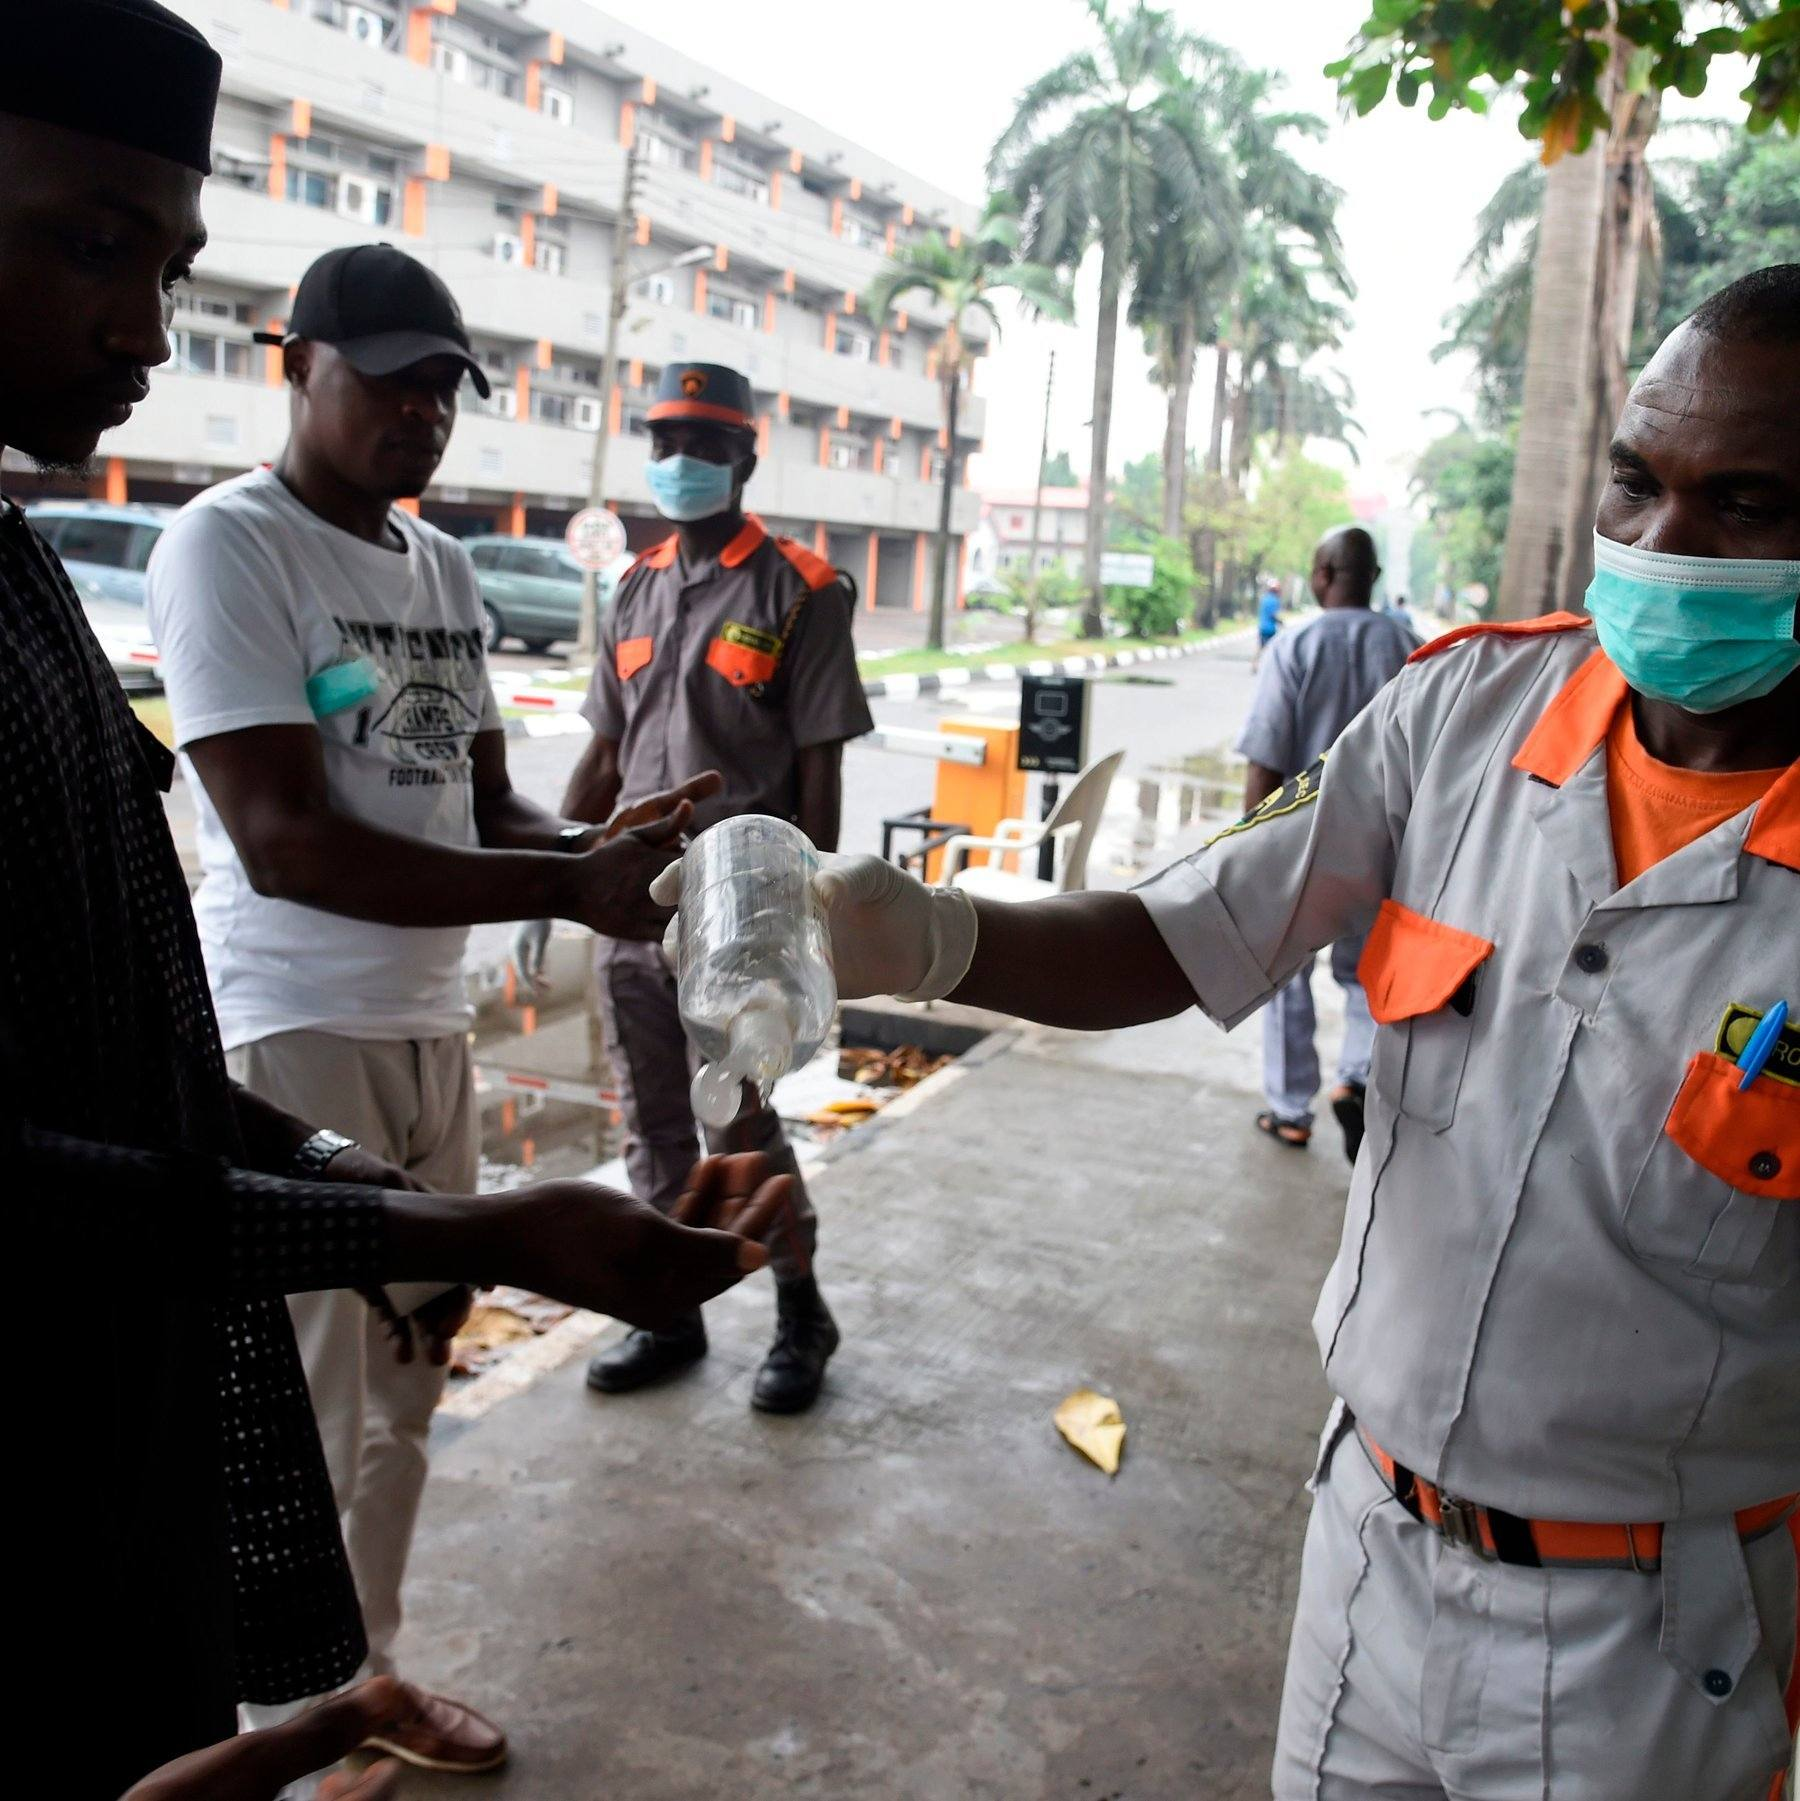 Yaounde, Cameroon: A health official disinfects hands of citizens in a bid to save them from catching Coronavirus